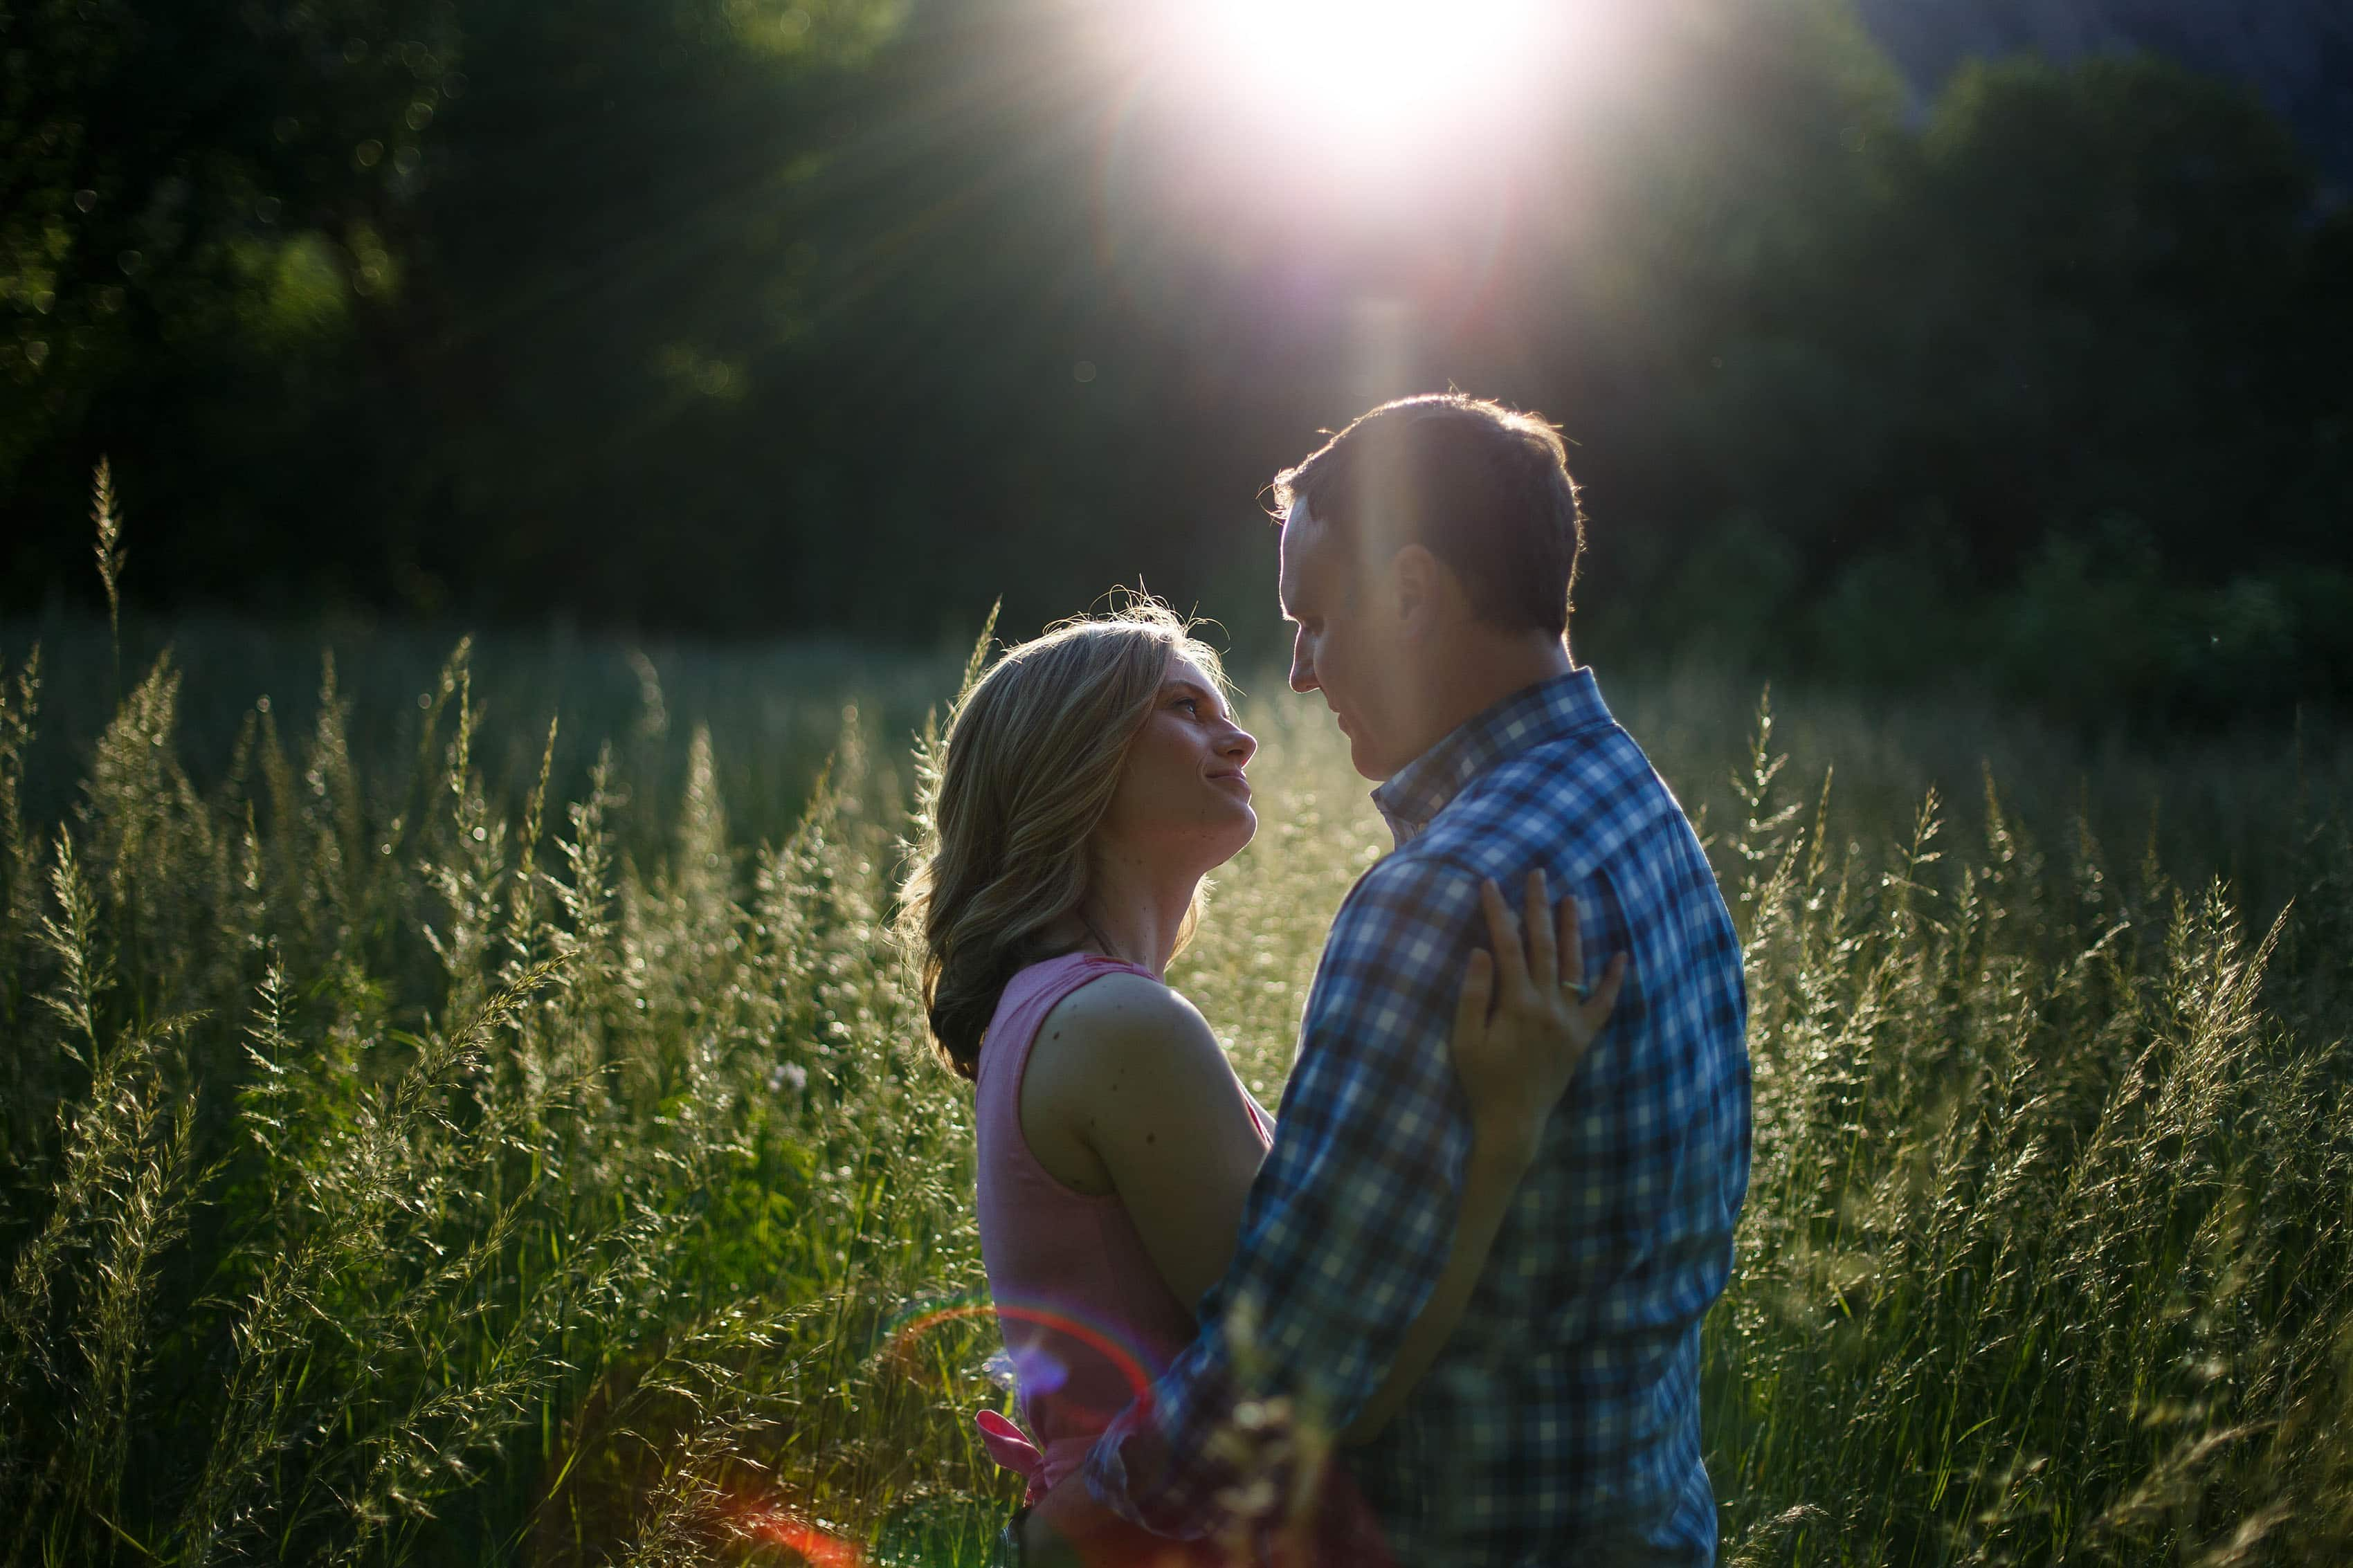 The sun sets over the flatirons as a couple embrace in long grass